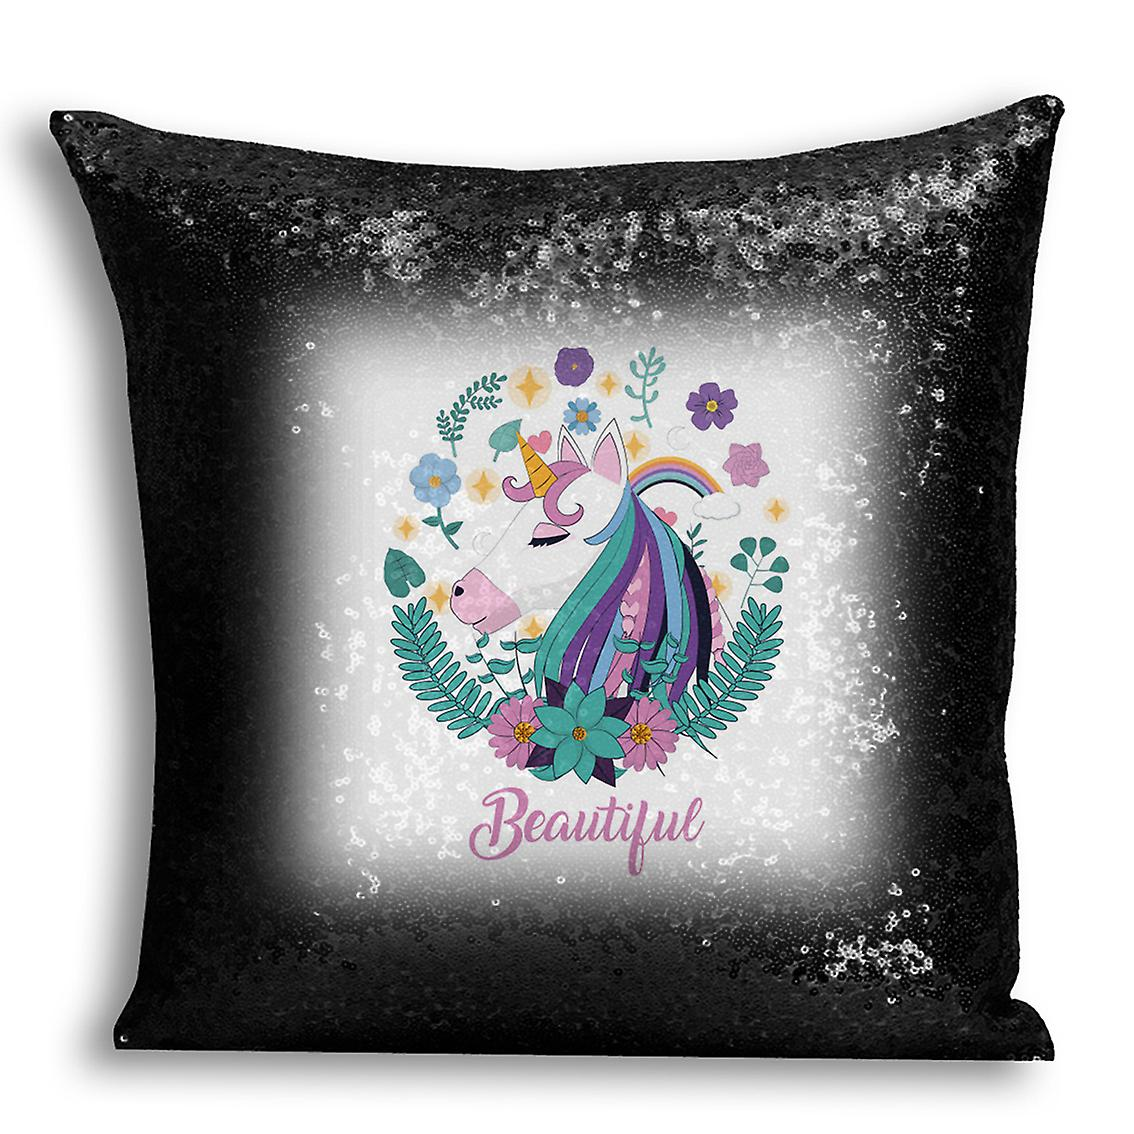 Design Cover Sequin For I tronixsUnicorn Home Black Decor Printed 13 CushionPillow j5Ac34LRq